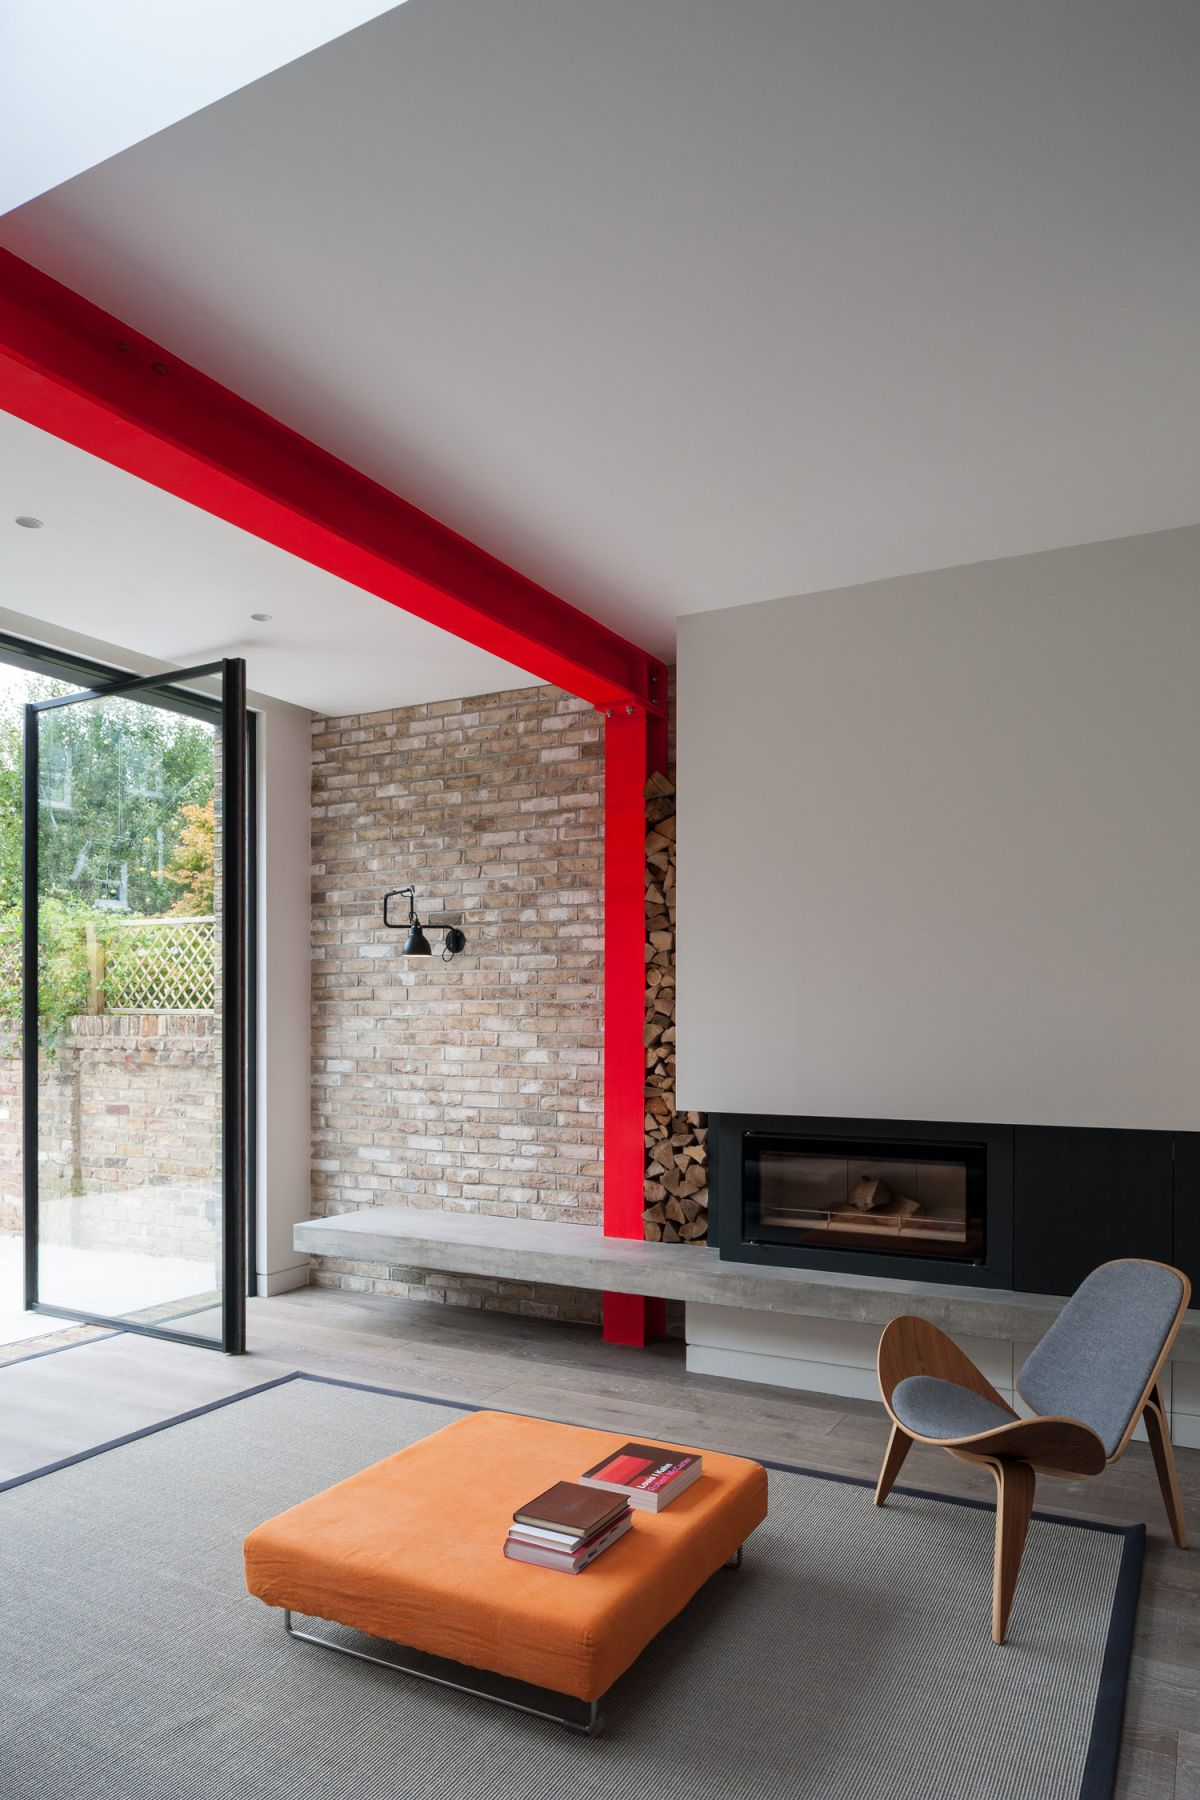 Modern Home Extension Ideas From Side Returns To Lofts And Basements Livingetc Livingetcdocument Documenttype